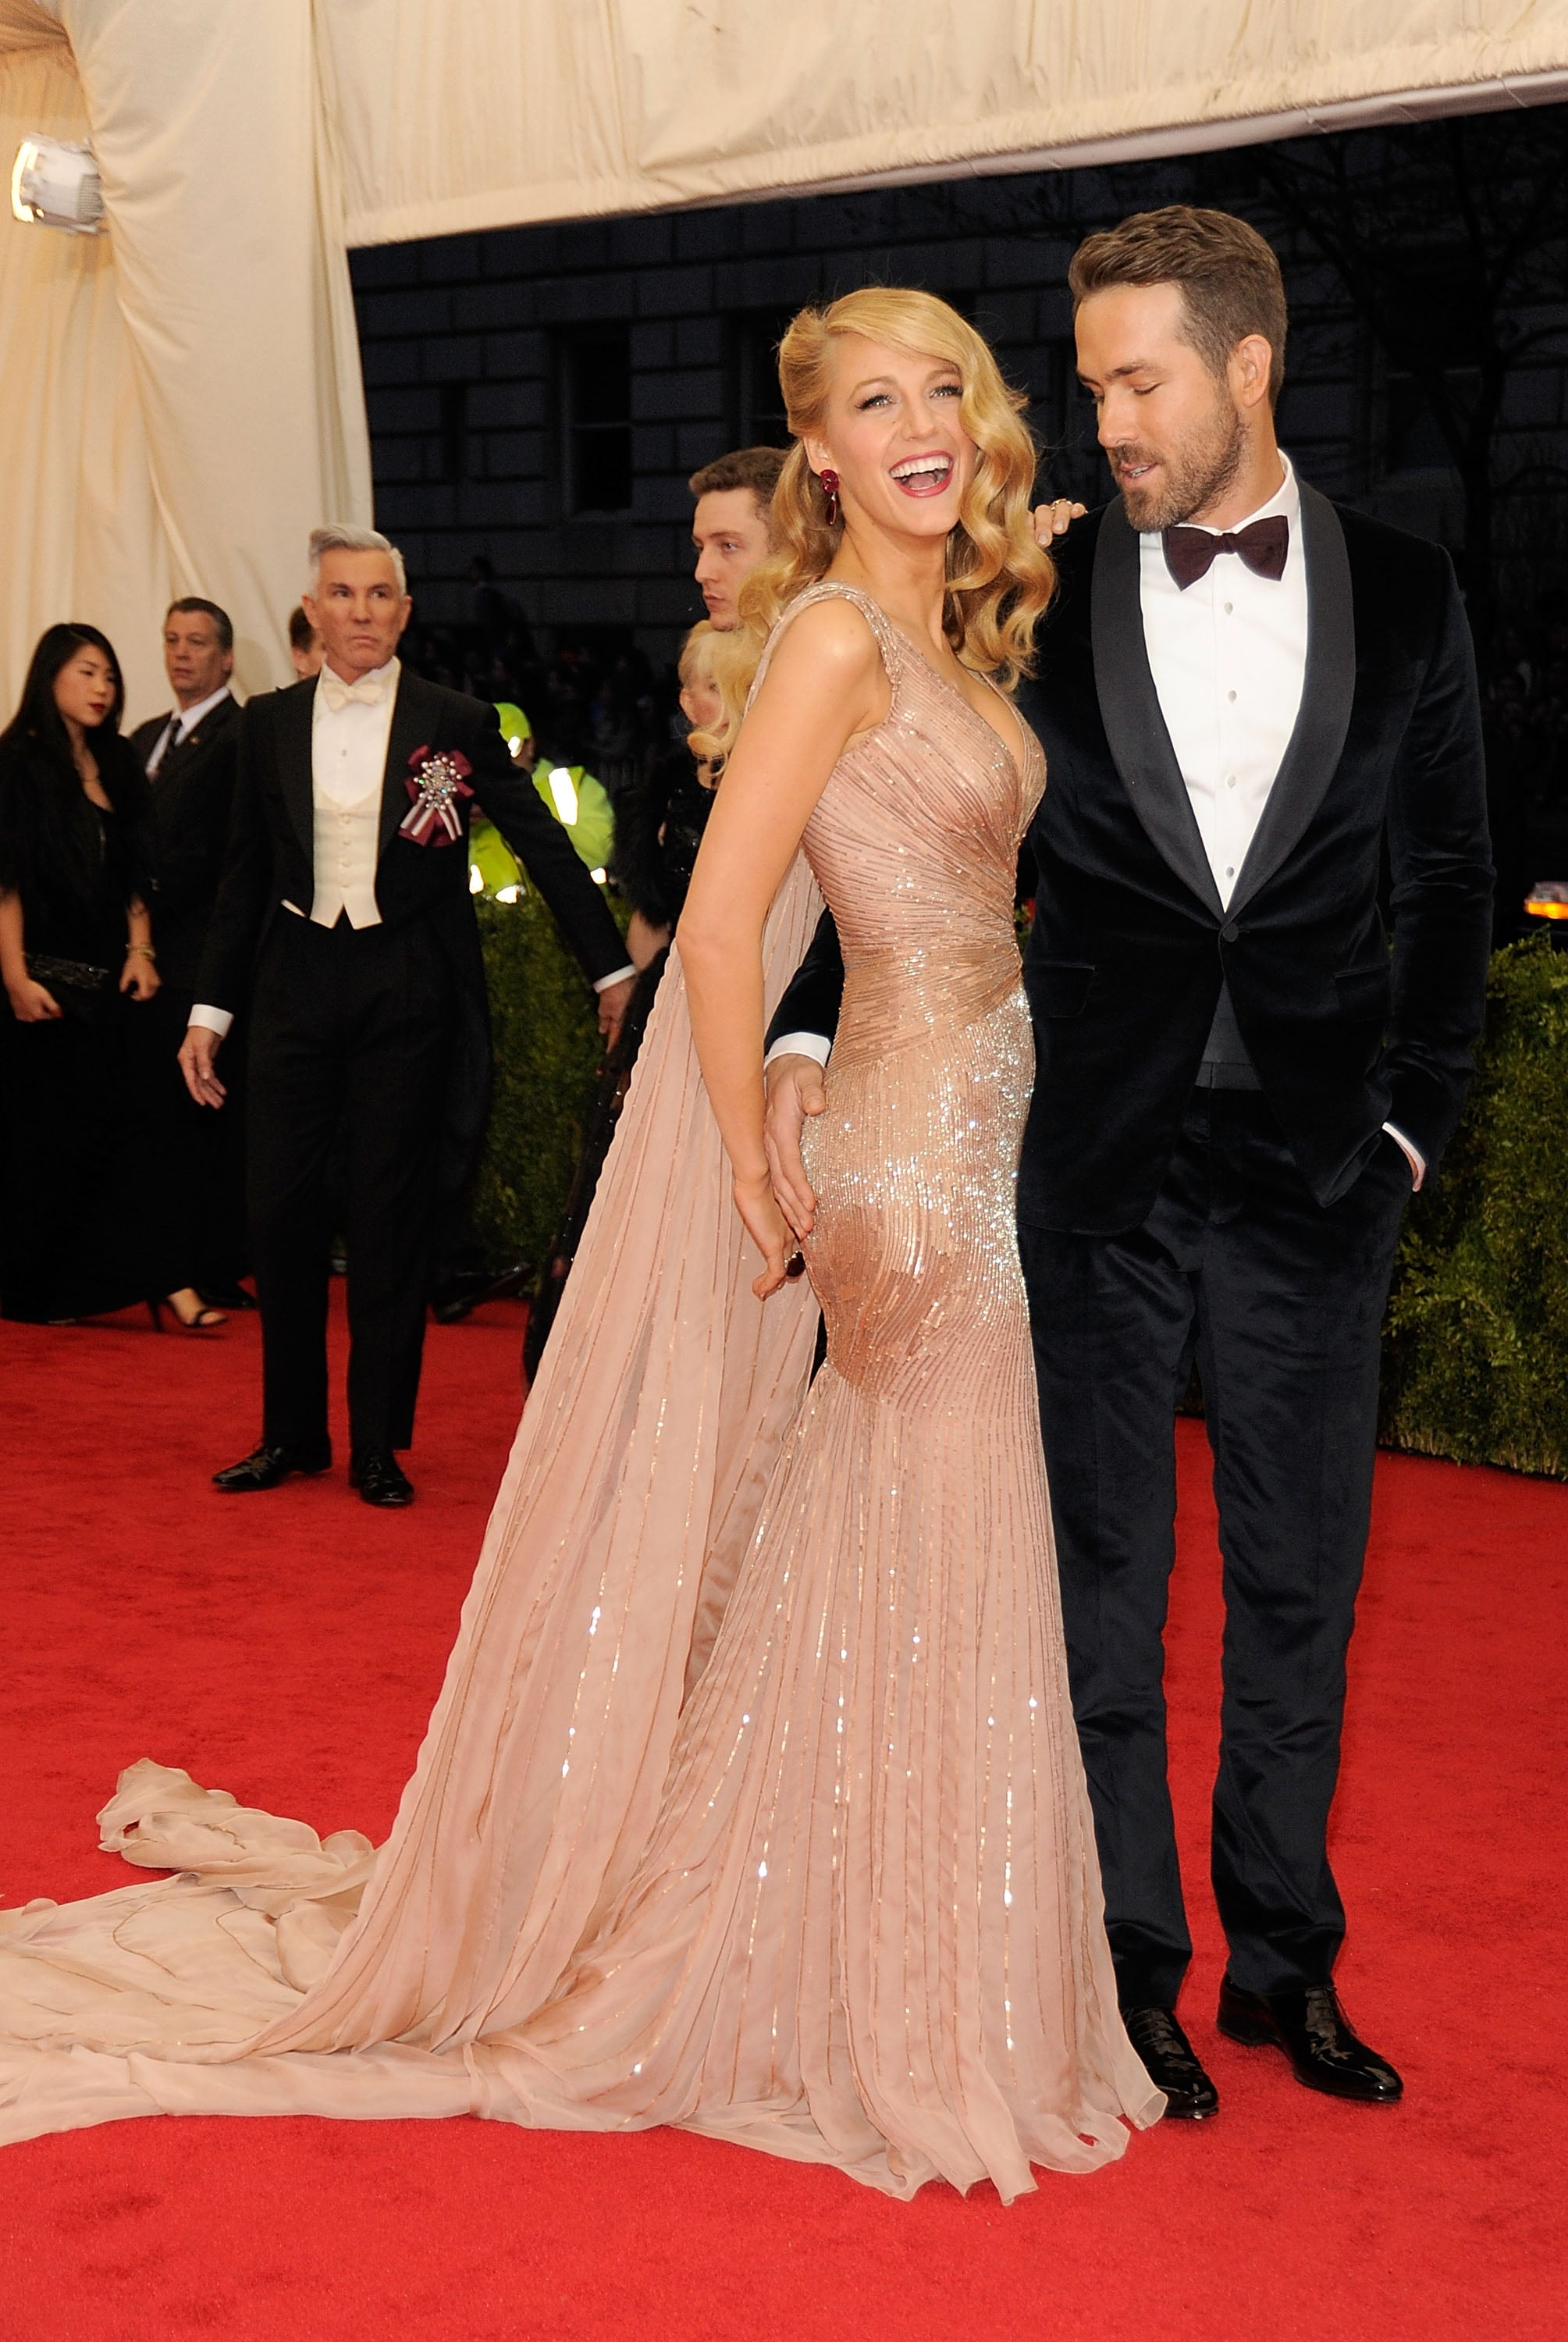 Ryan Reynolds Copping a Feel at the Met Gala